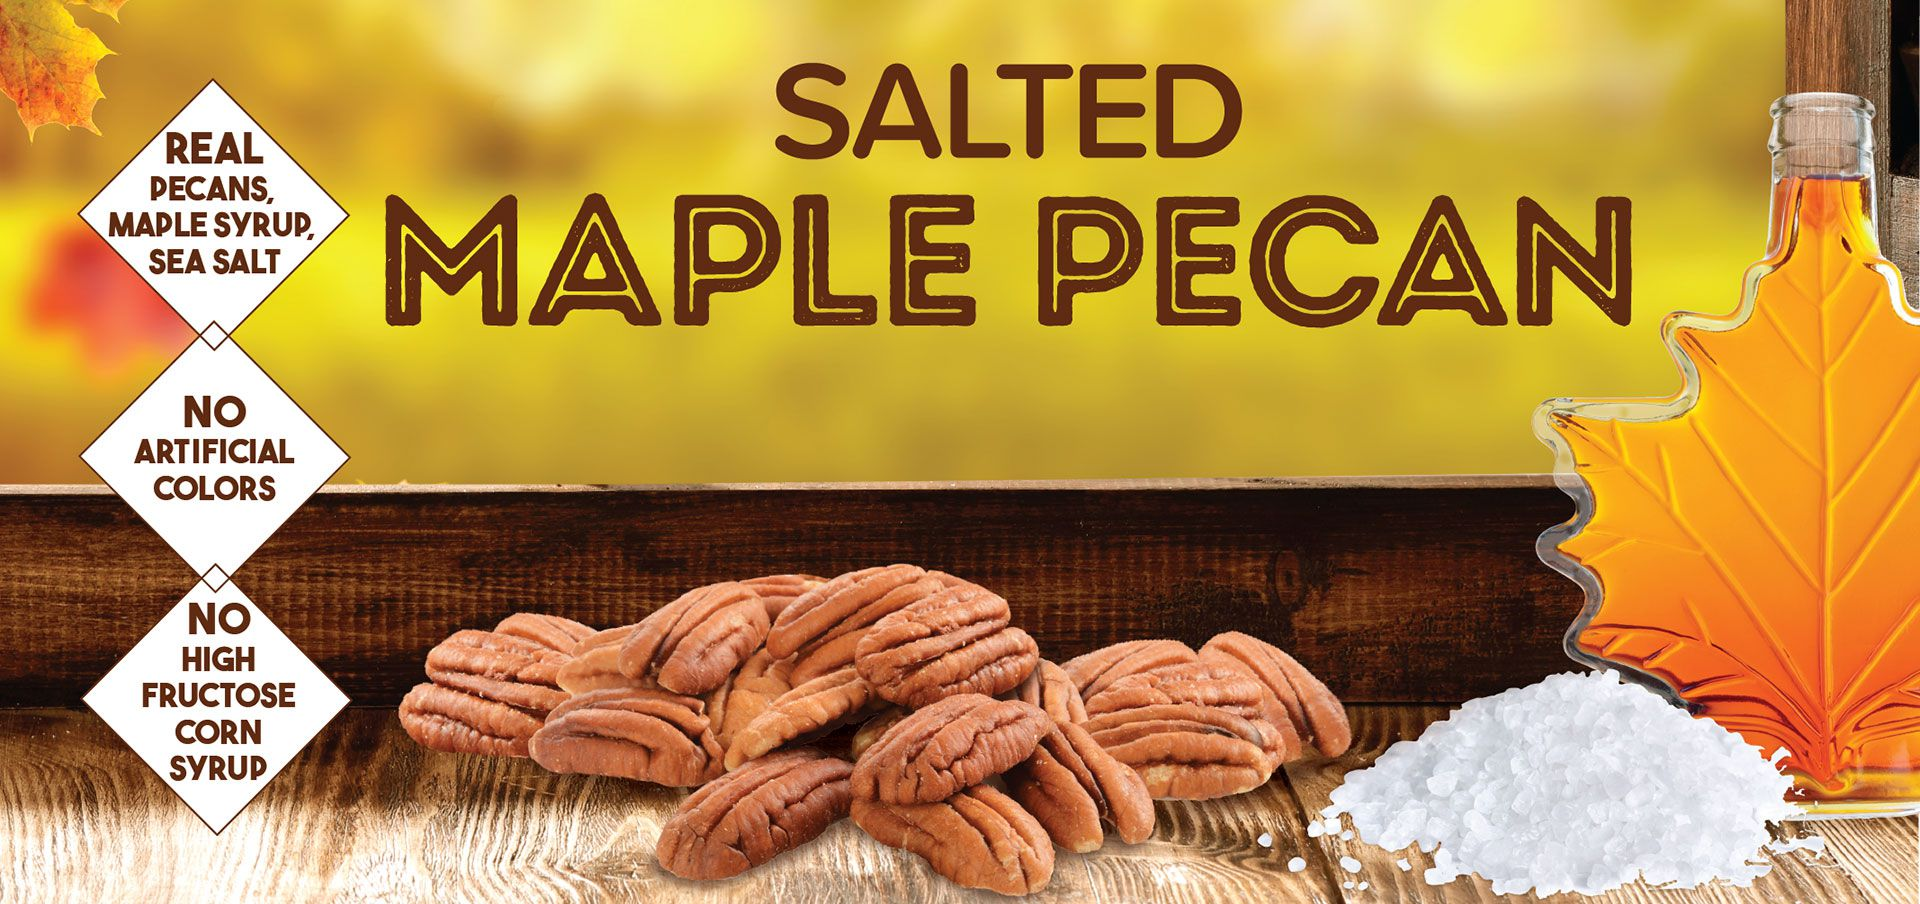 salted maple pecan label image